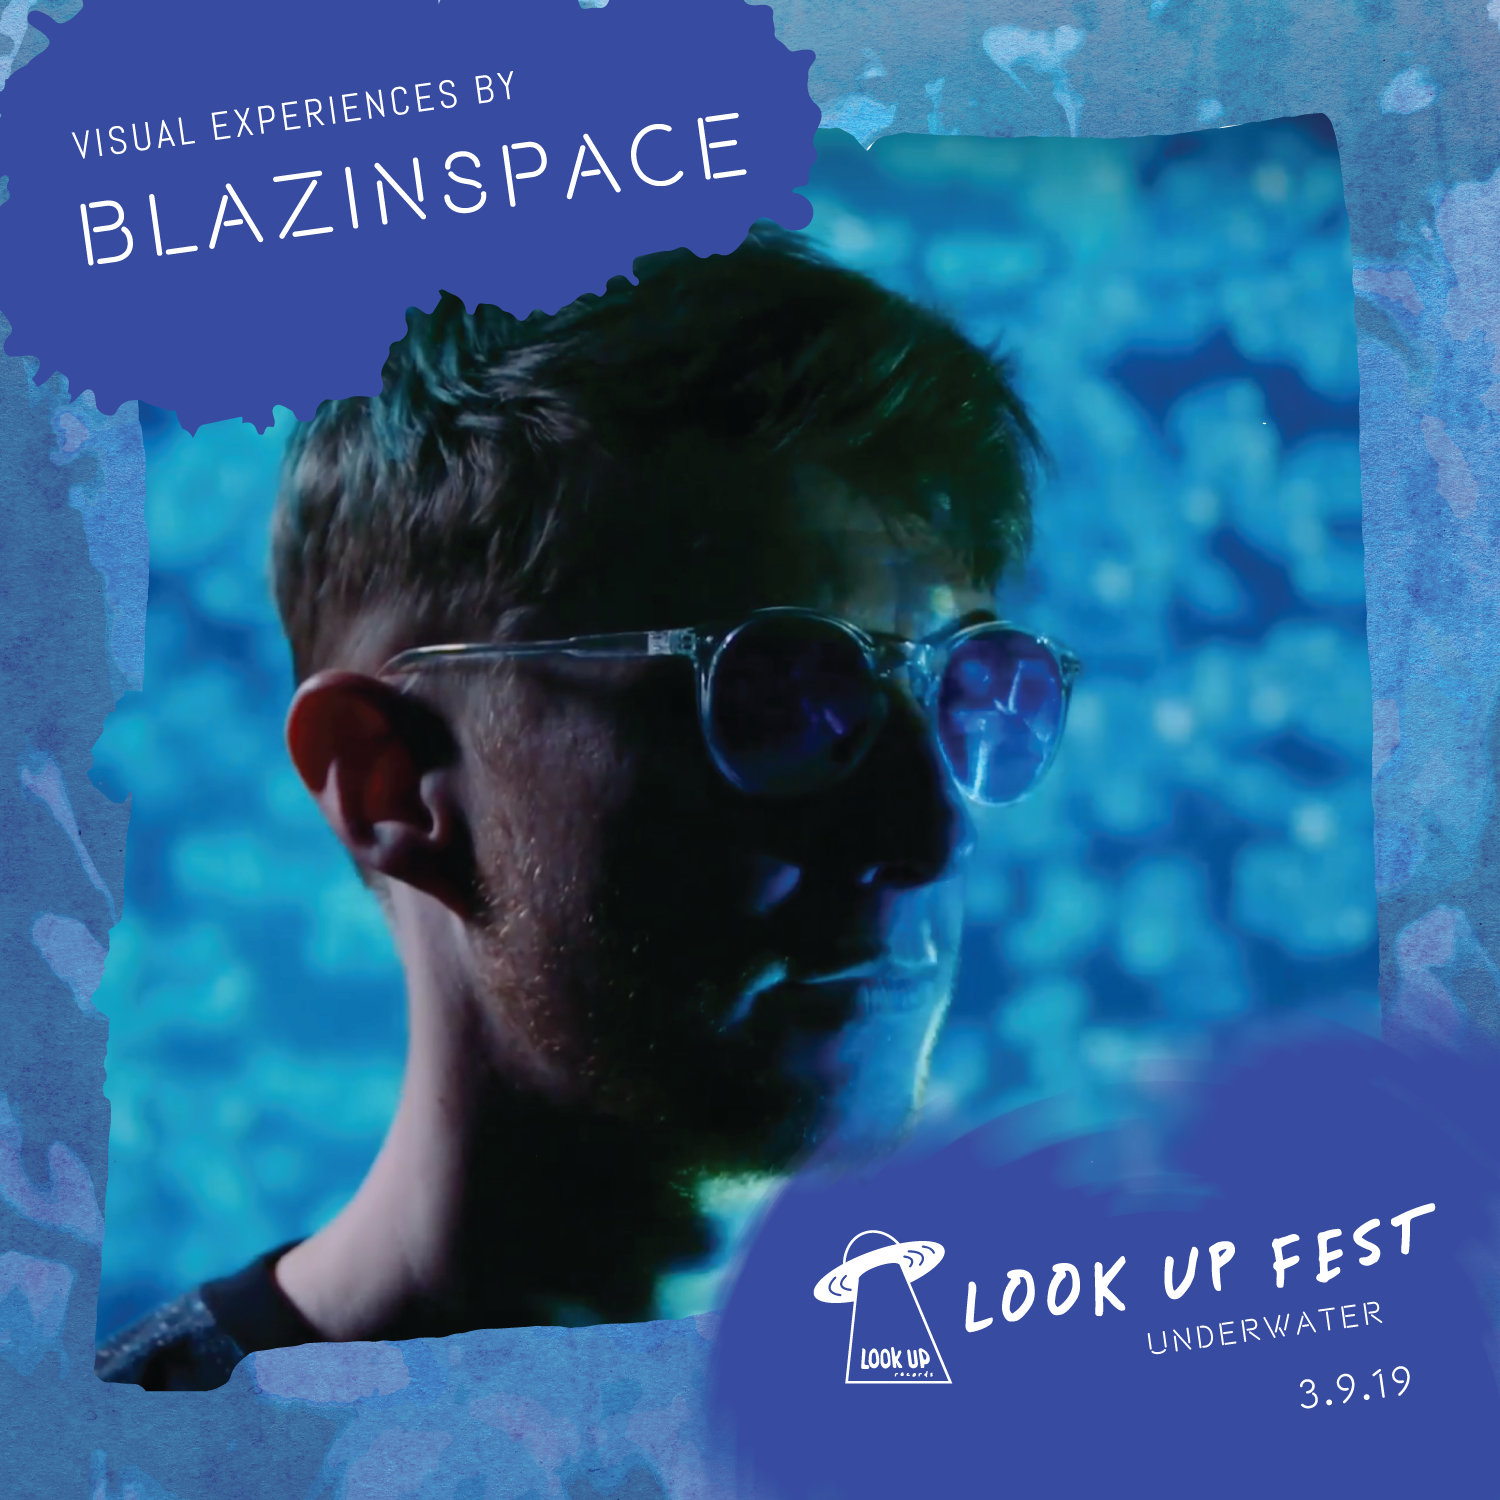 BLAZINSPACE - Blazinspace is a local VJ that creates great live visuals, music videos, and stories. At Look Up Fest: Underwater he'll set things ablaze with underwater light experiences, submerging our visual senses into the watery depths with stunning floor-to-ceiling projections.